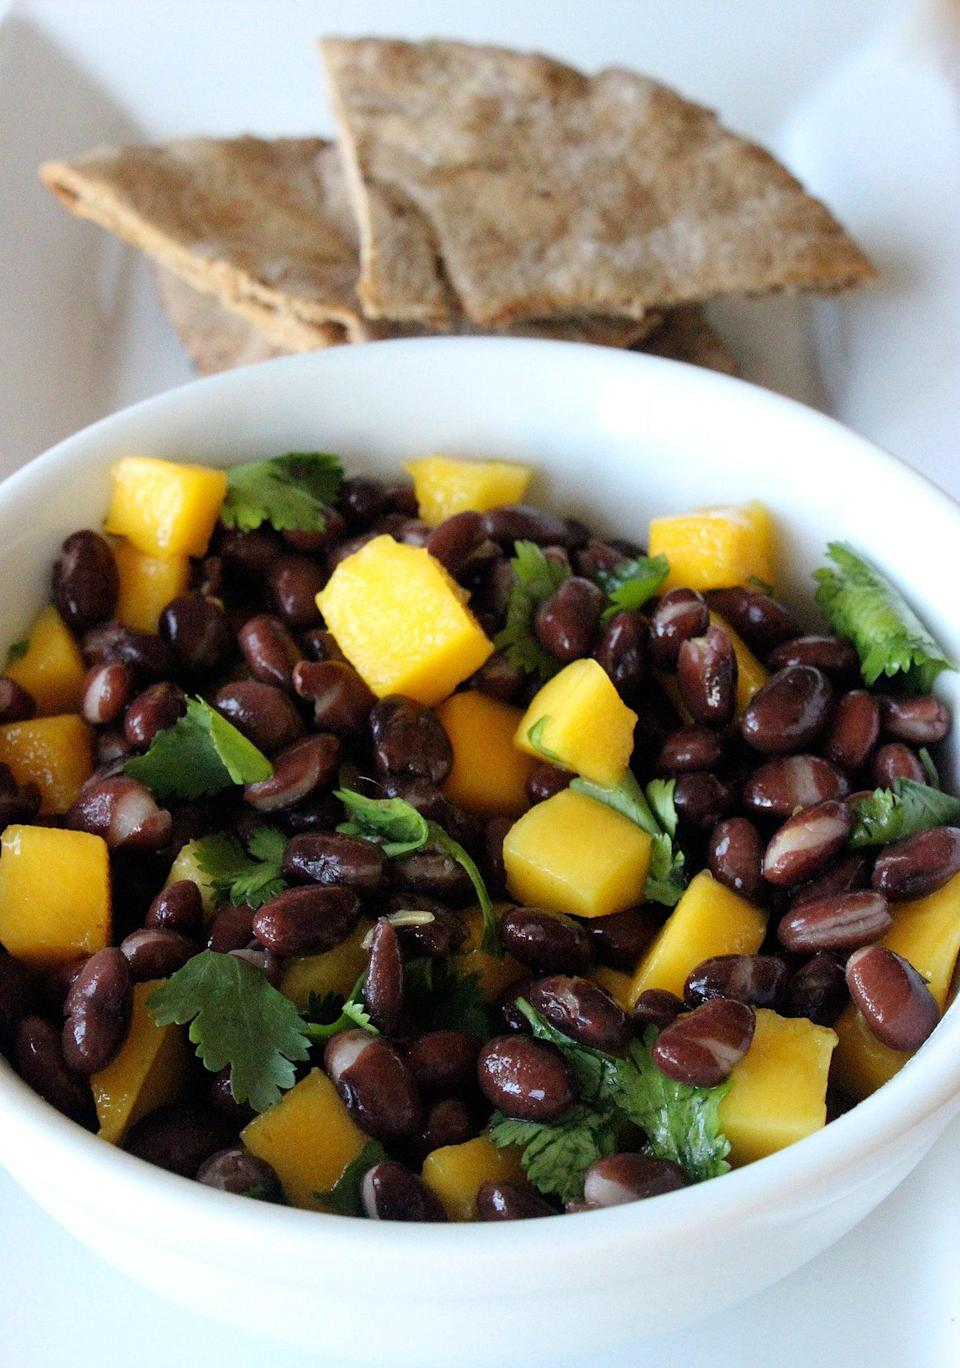 """<p>With more than 13 grams of fiber and nearly 17 grams of protein, this light, clean, and potassium-rich dish will refuel your body after a tough workout, help you rehydrate, and even help soothe sore muscles.</p> <p><strong>Get the recipe:</strong> <a href=""""http://www.popsugar.com/fitness/Healthy-Black-Bean-Salad-34778386/"""" class=""""link rapid-noclick-resp"""" rel=""""nofollow noopener"""" target=""""_blank"""" data-ylk=""""slk:black bean and mango salad"""">black bean and mango salad</a></p>"""